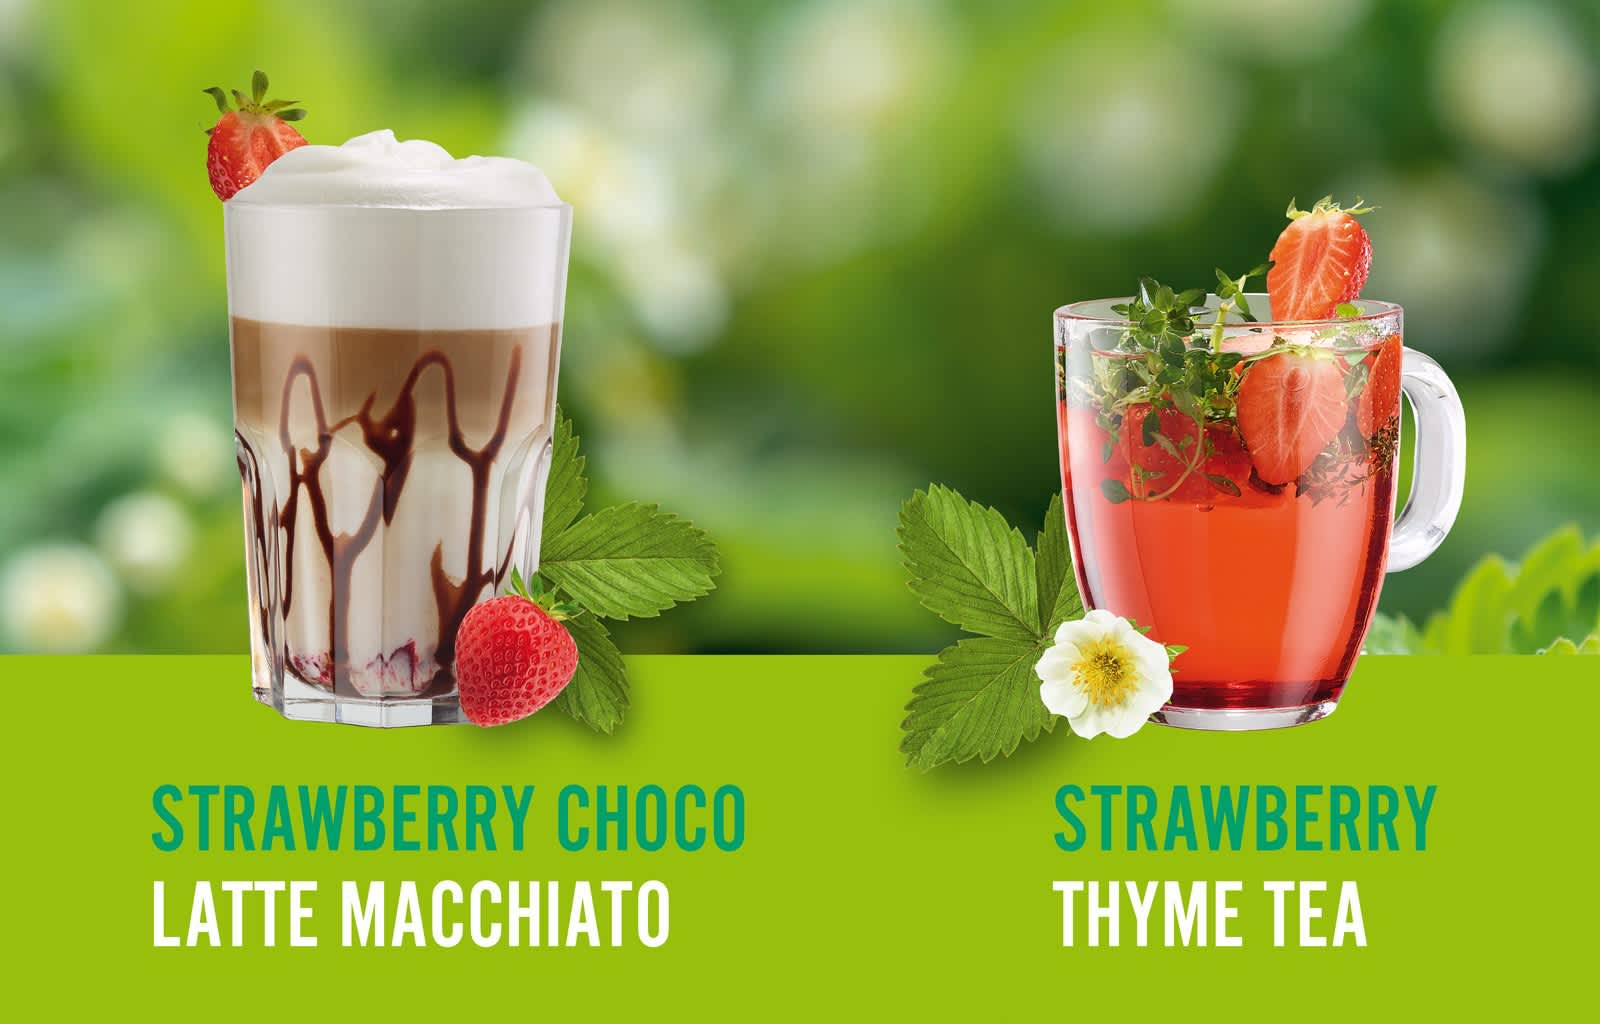 Hot Drinks Spring, Strawberry Thyme Tea, Strawberry Choco Latte Macchiato, Orange Tea, Matcha Tea Latte